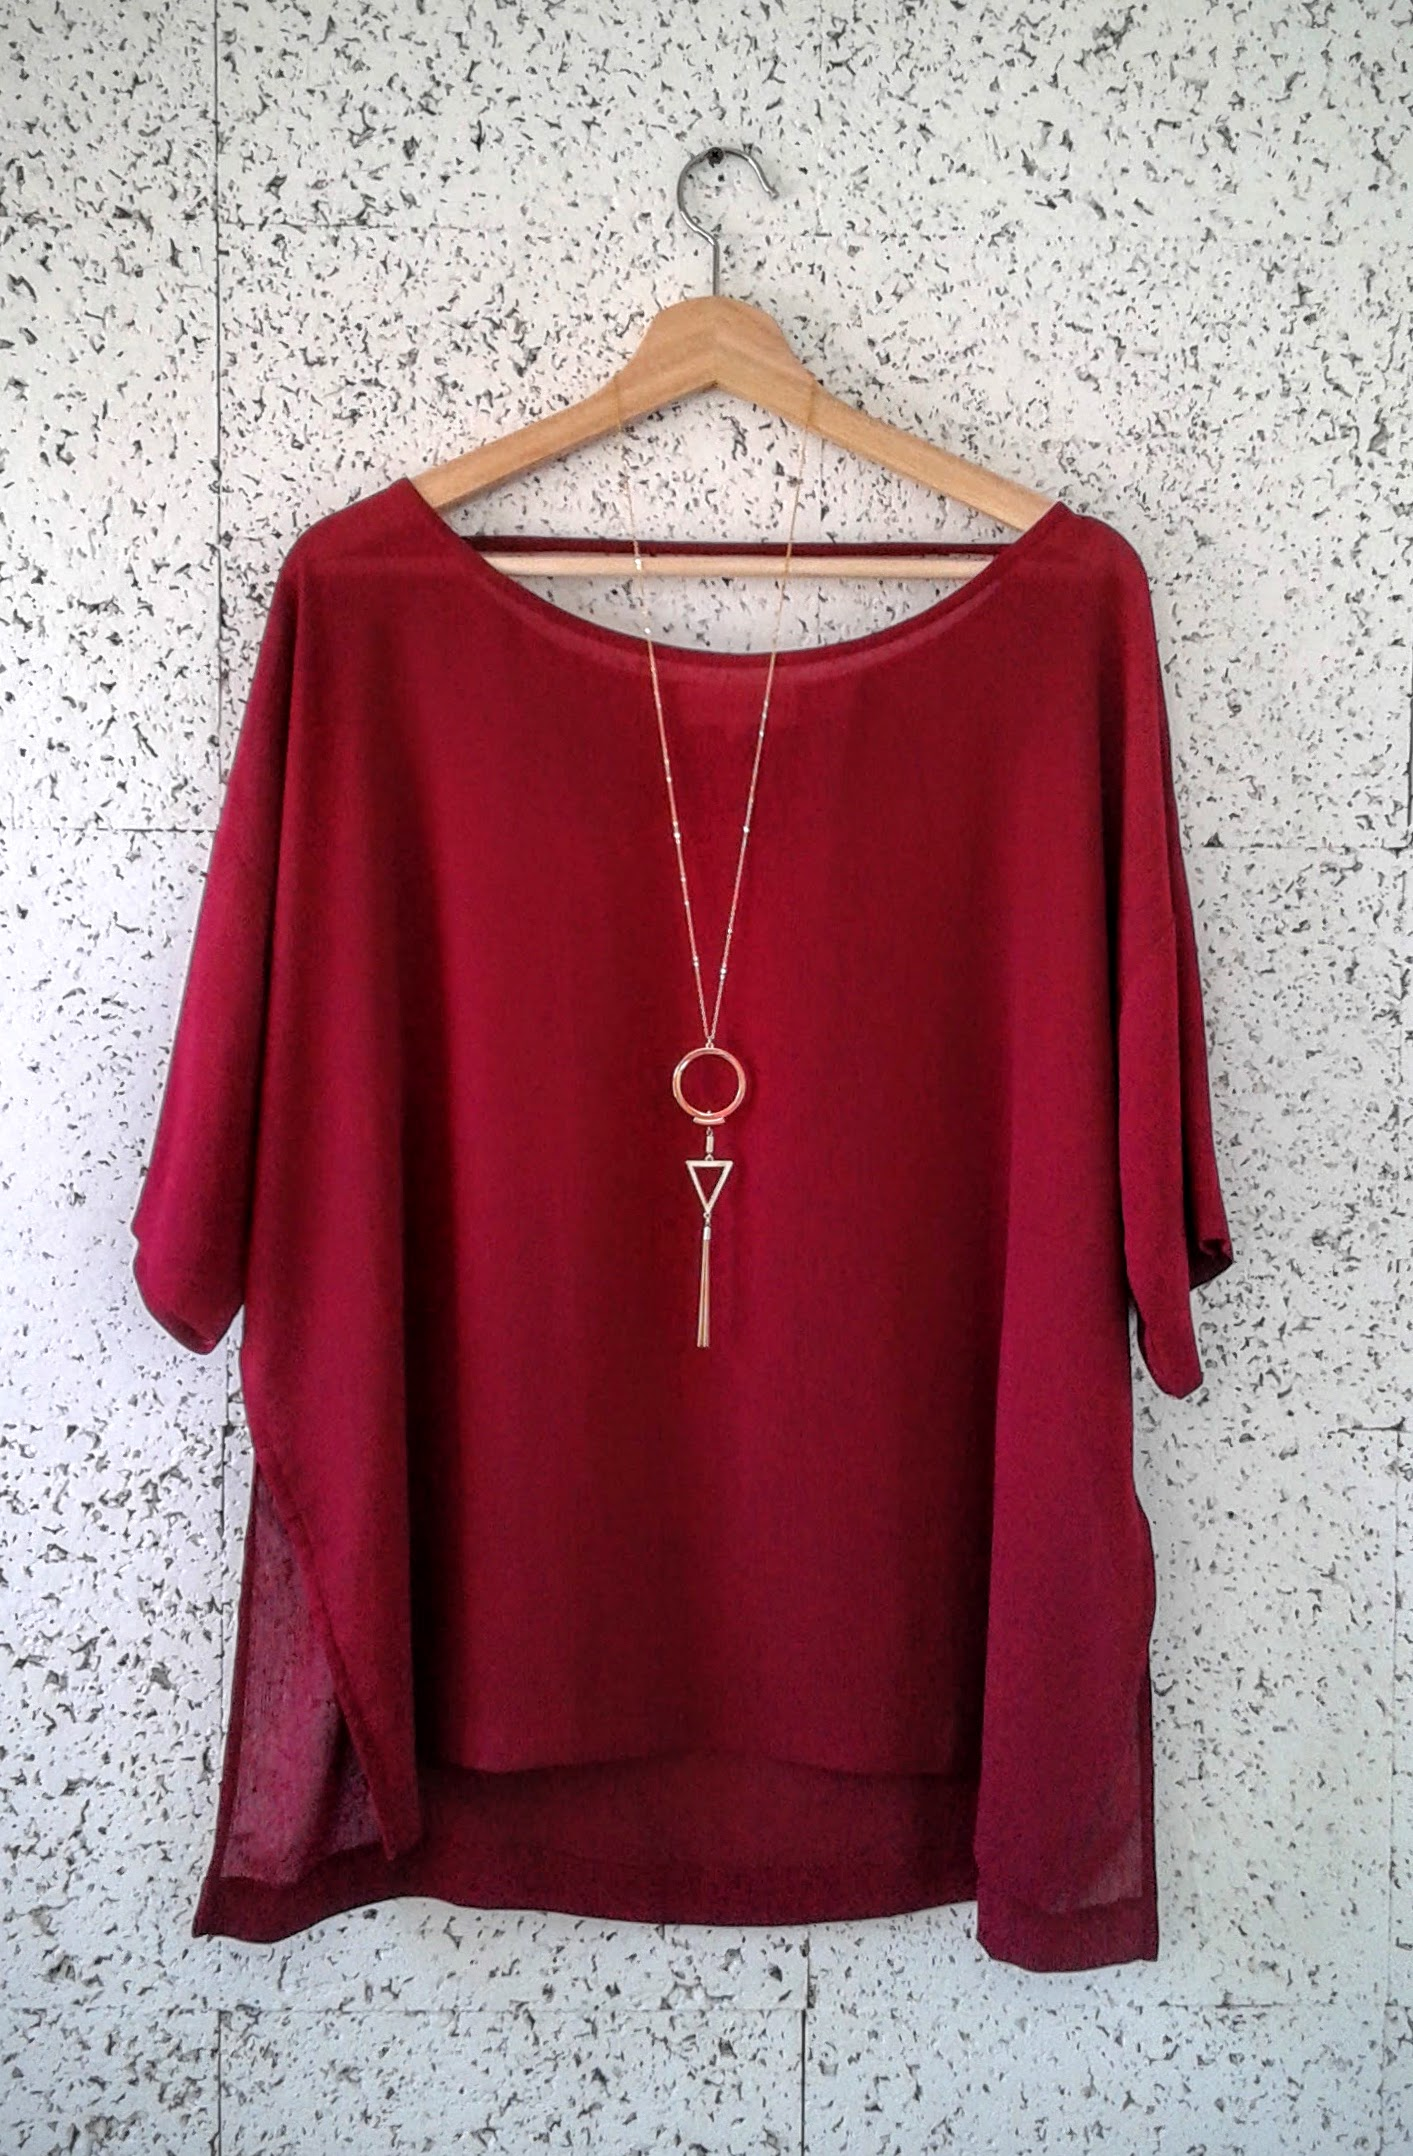 Nicole Campre top; Size M, $26; Necklace, $14.